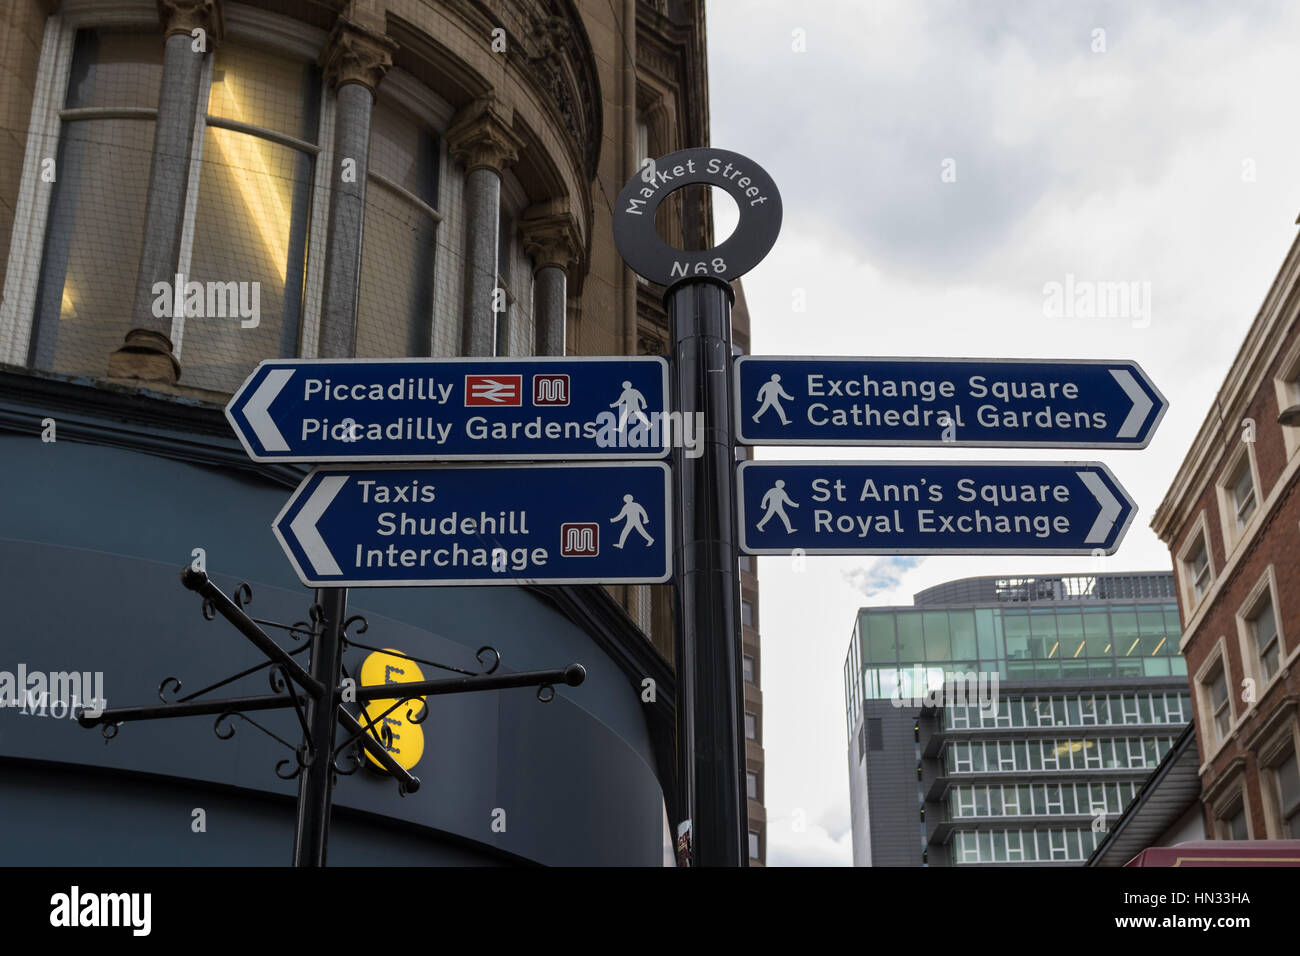 Pedestrian signpost at Market Street showing directions to the points of interest in Manchester, UK - Stock Image